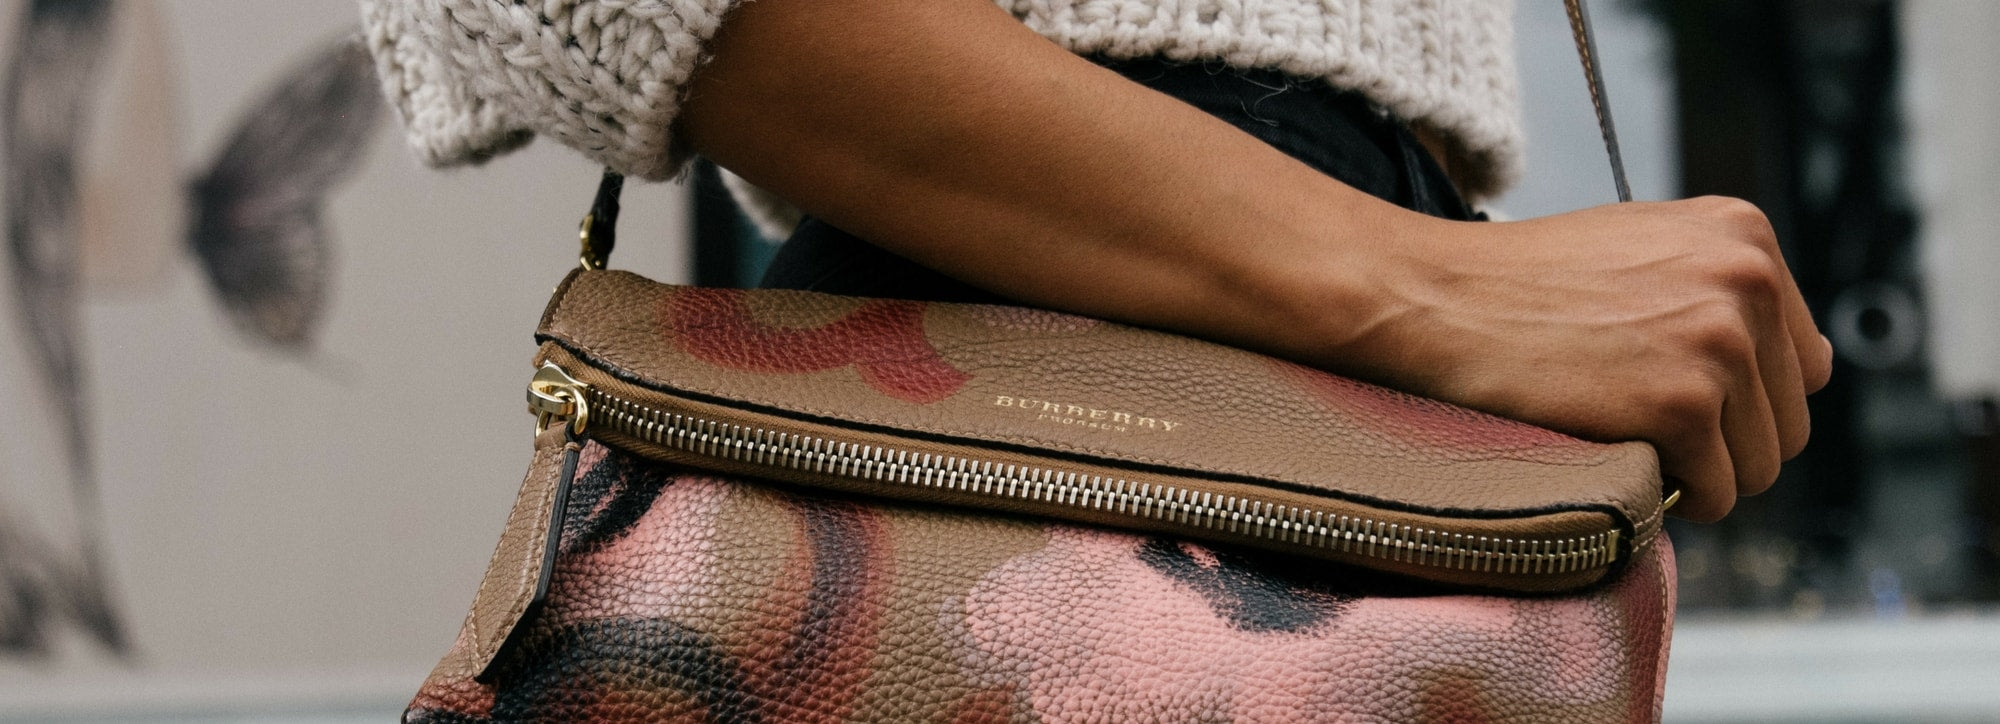 The Zero-Waste Handbag: How to be Clutter-Free On the Go